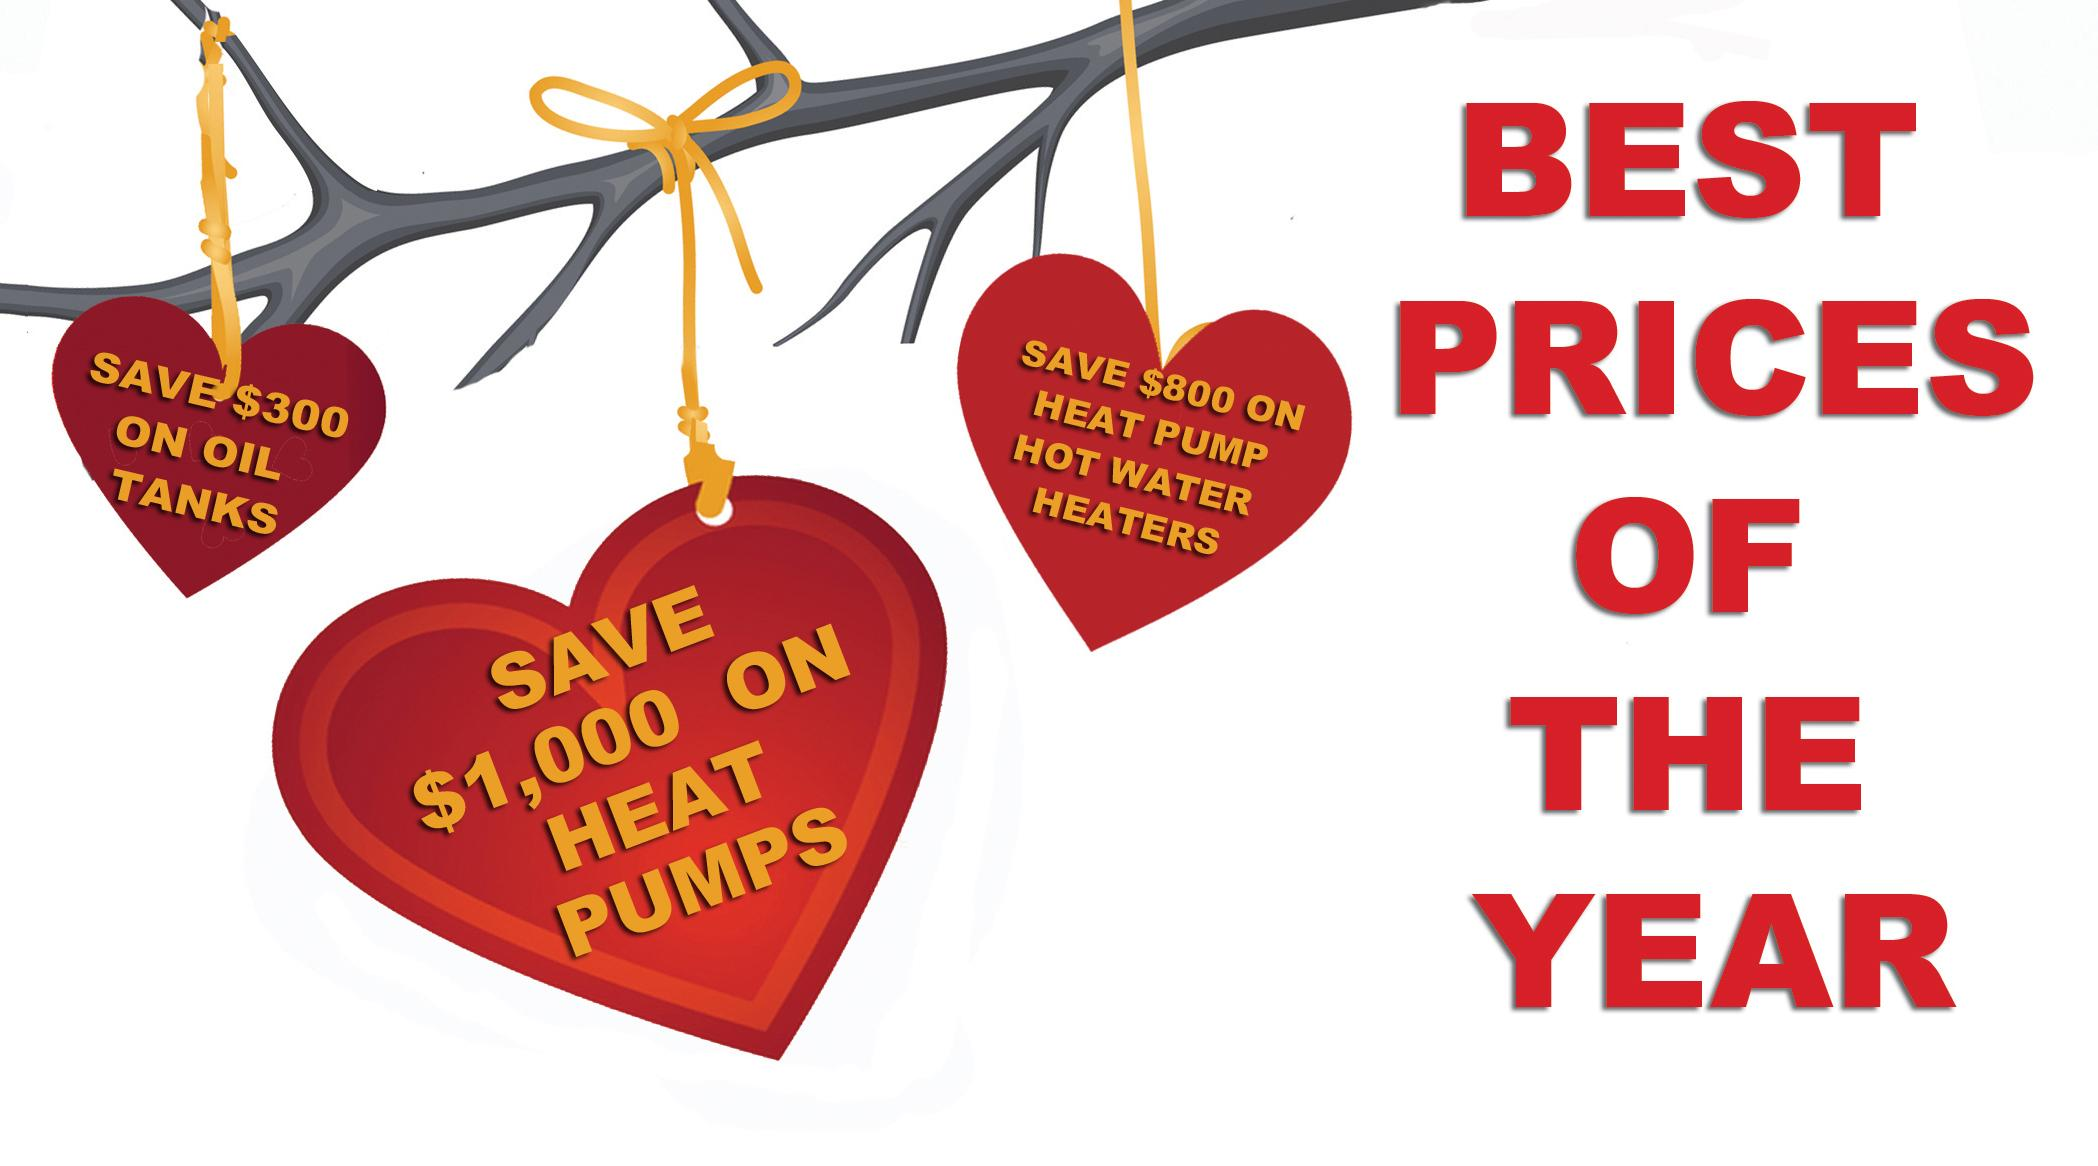 Best Prices of the Year on Heating Equipment